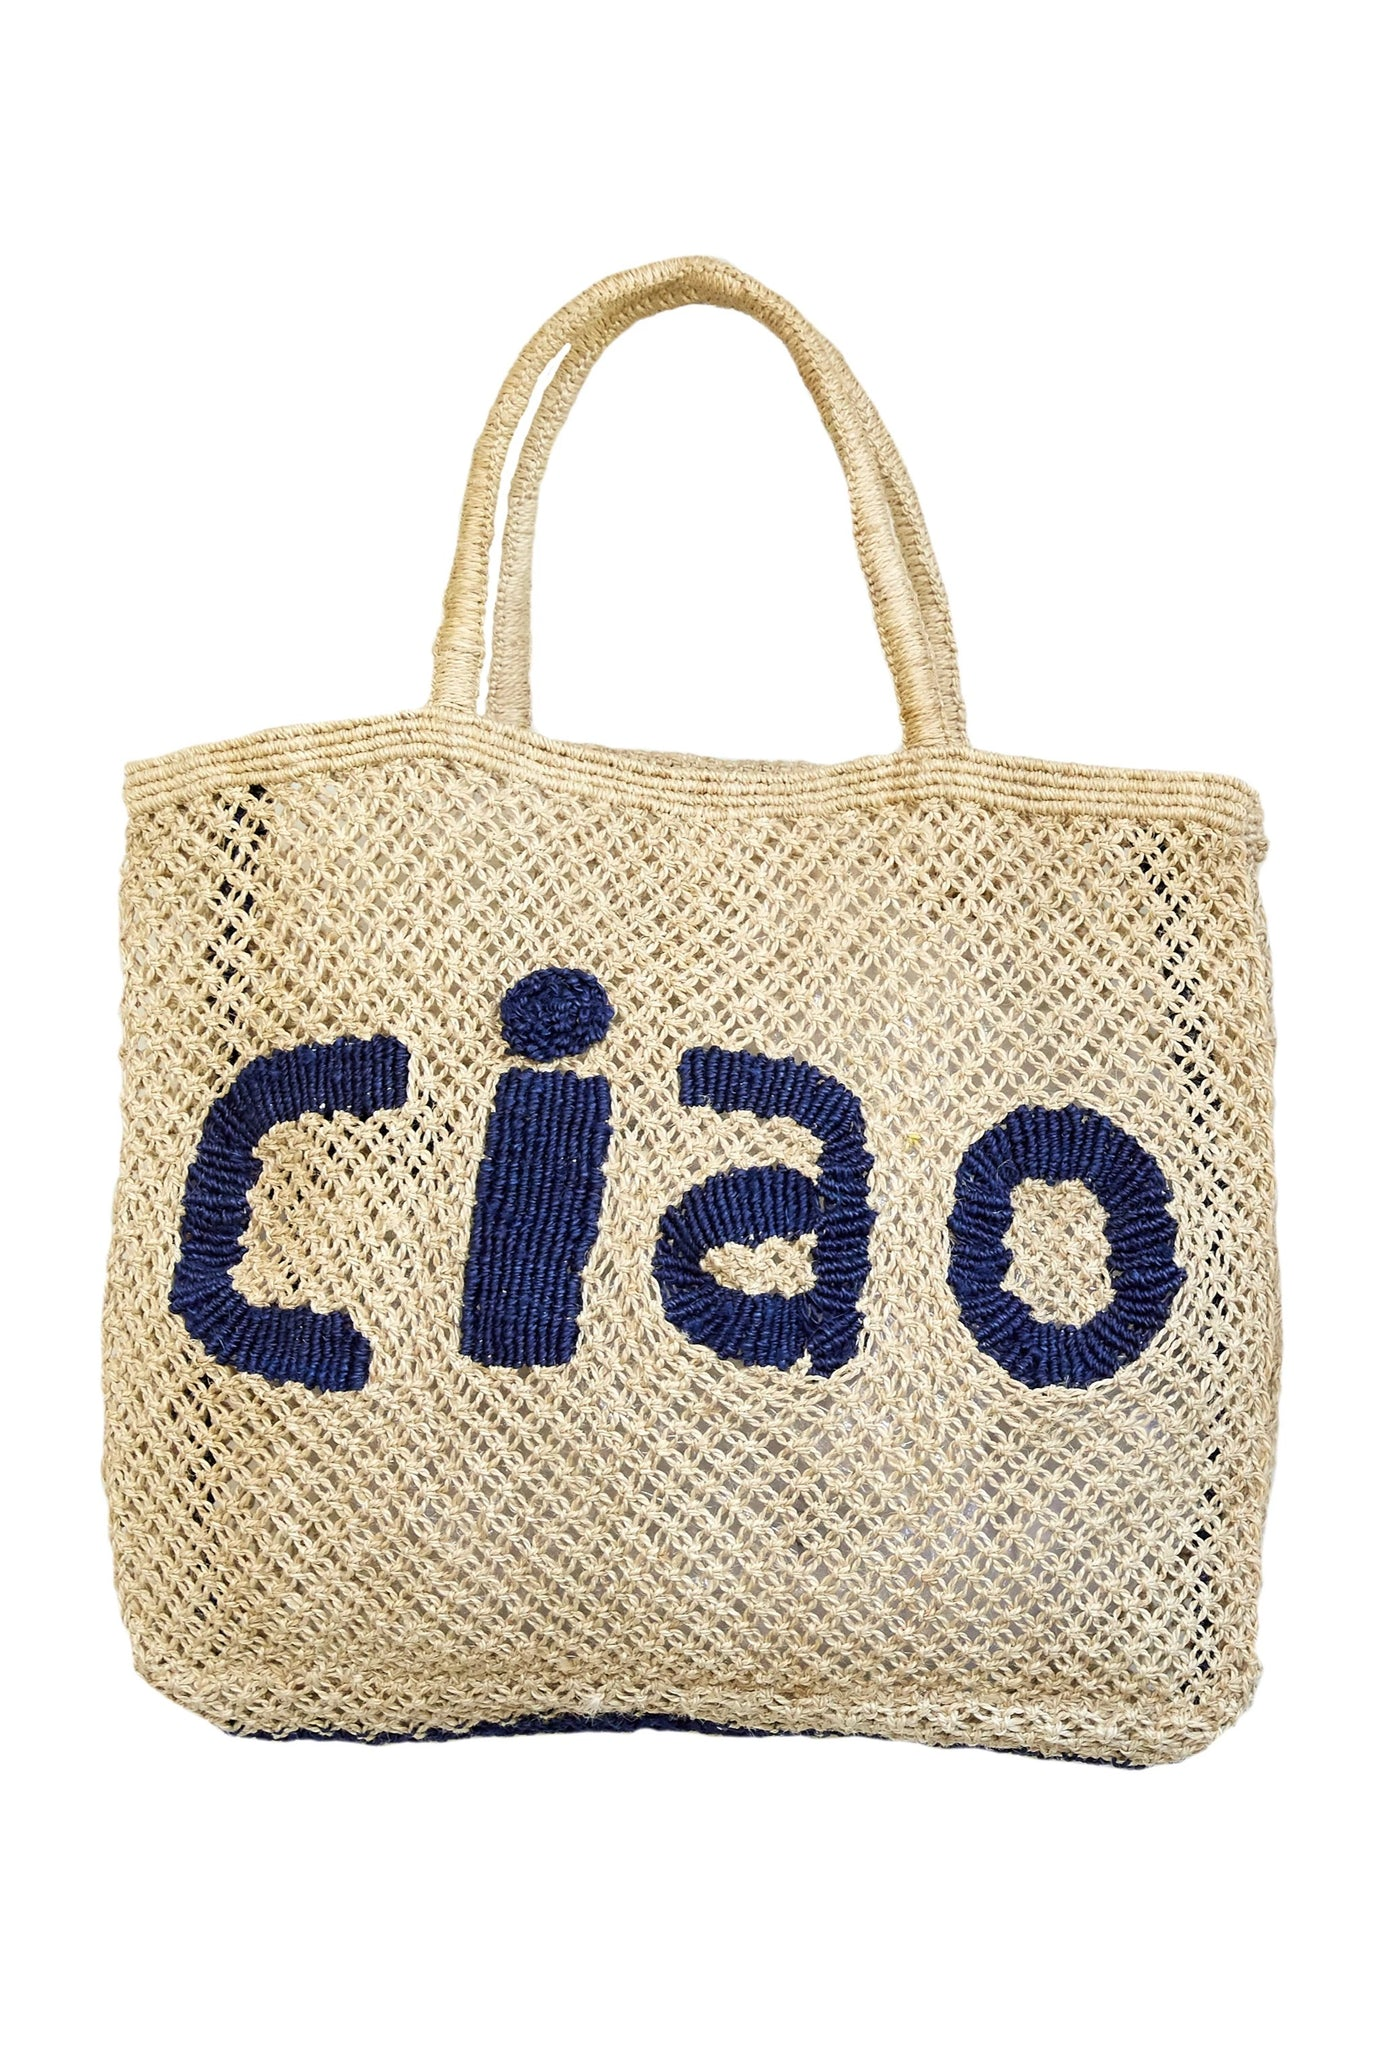 Ciao- Natural with Indigo